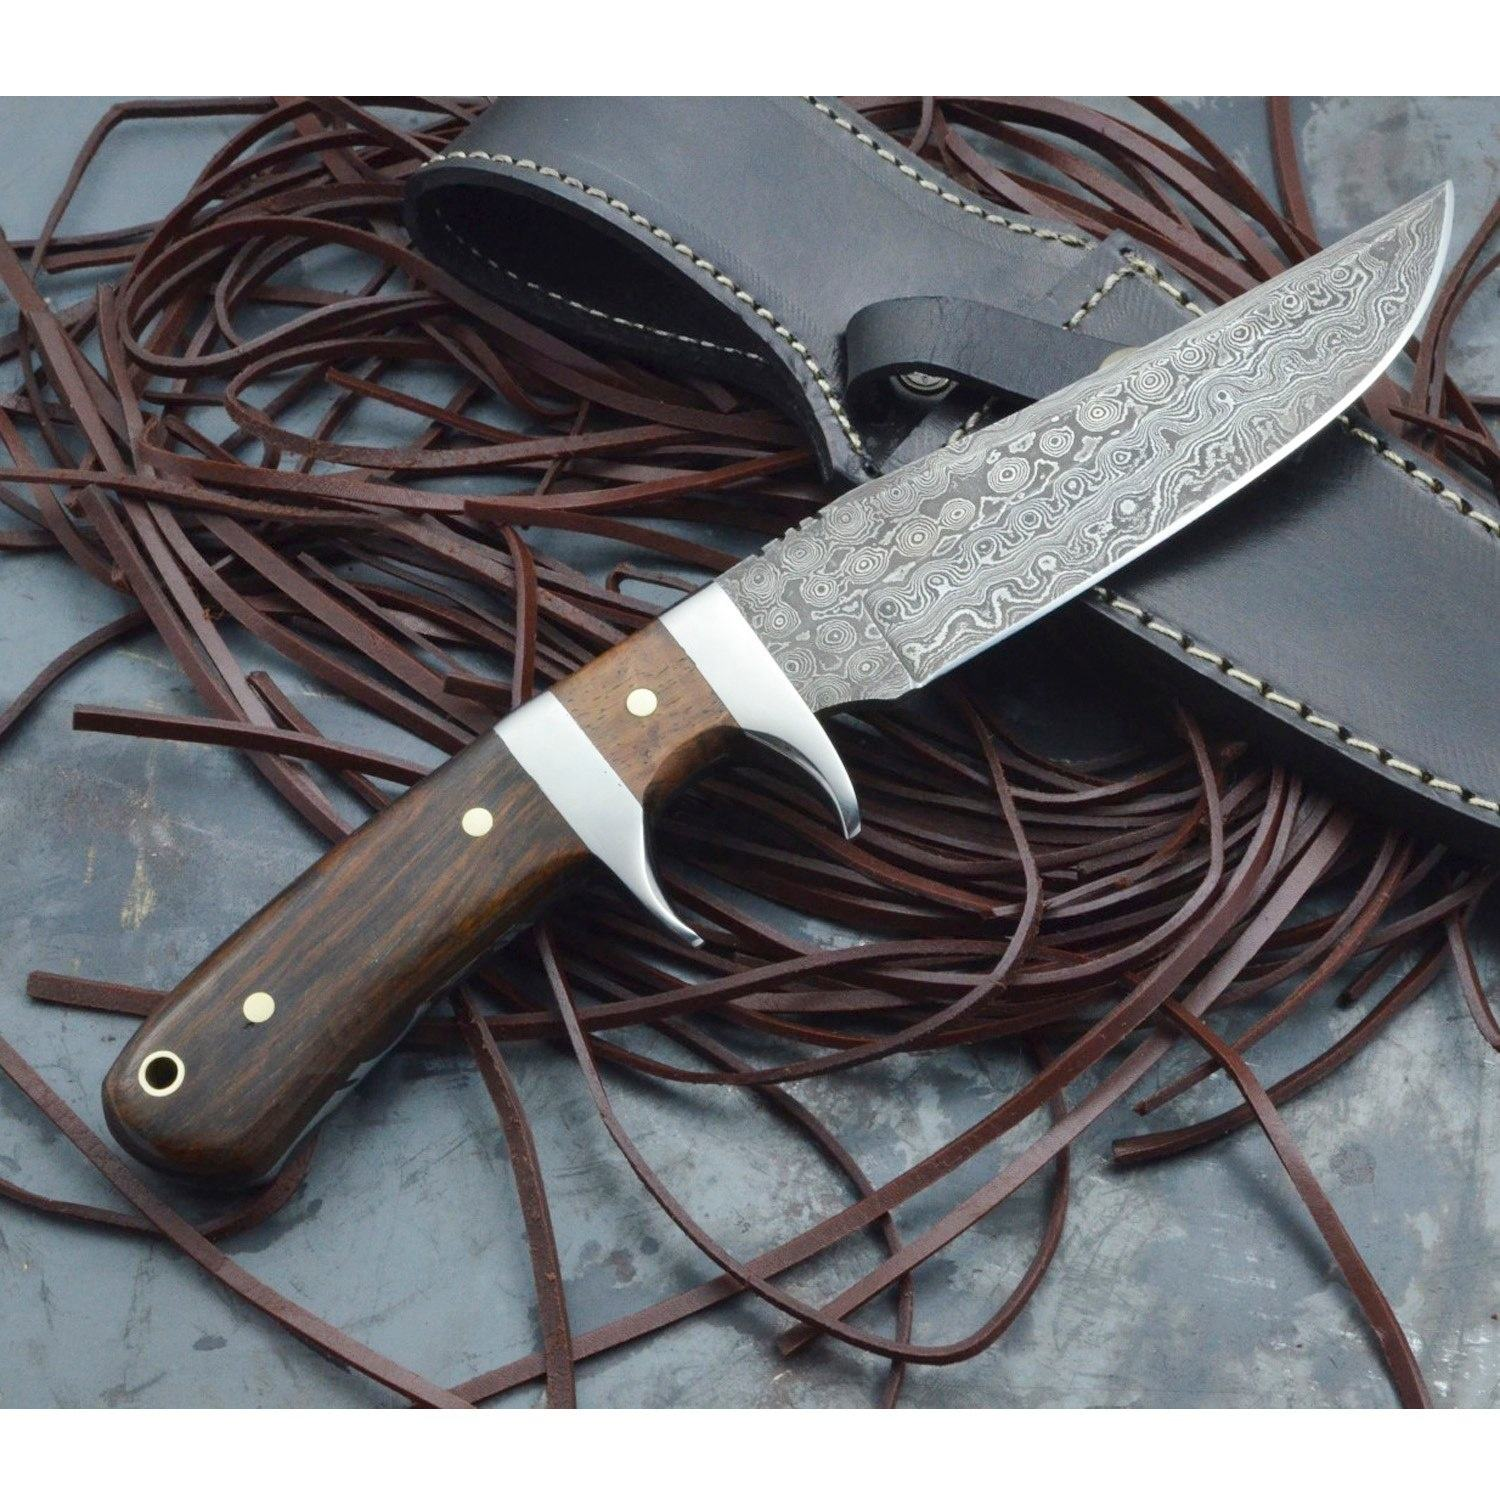 Damascus Knife Custom Handmade Damascus Hunting Knife in Walnut Wood and Steel Clips OAL 10 inches with Leather Sheath